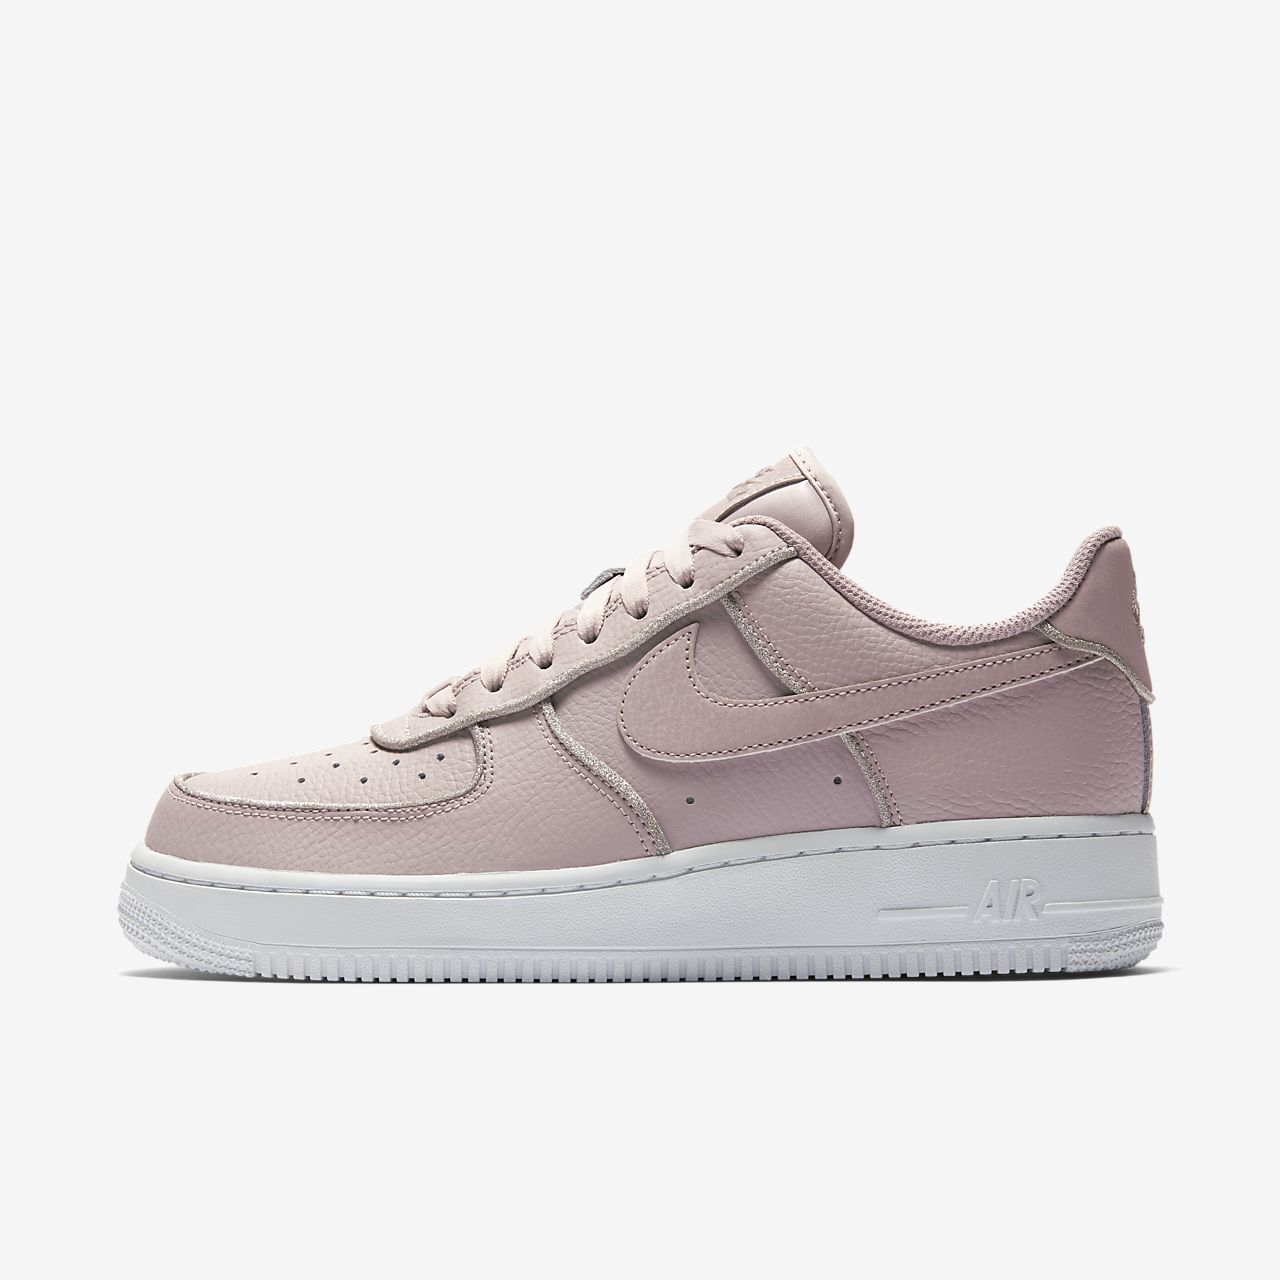 Chaussure Nike Air Force 1 Low Glitter pour Femme